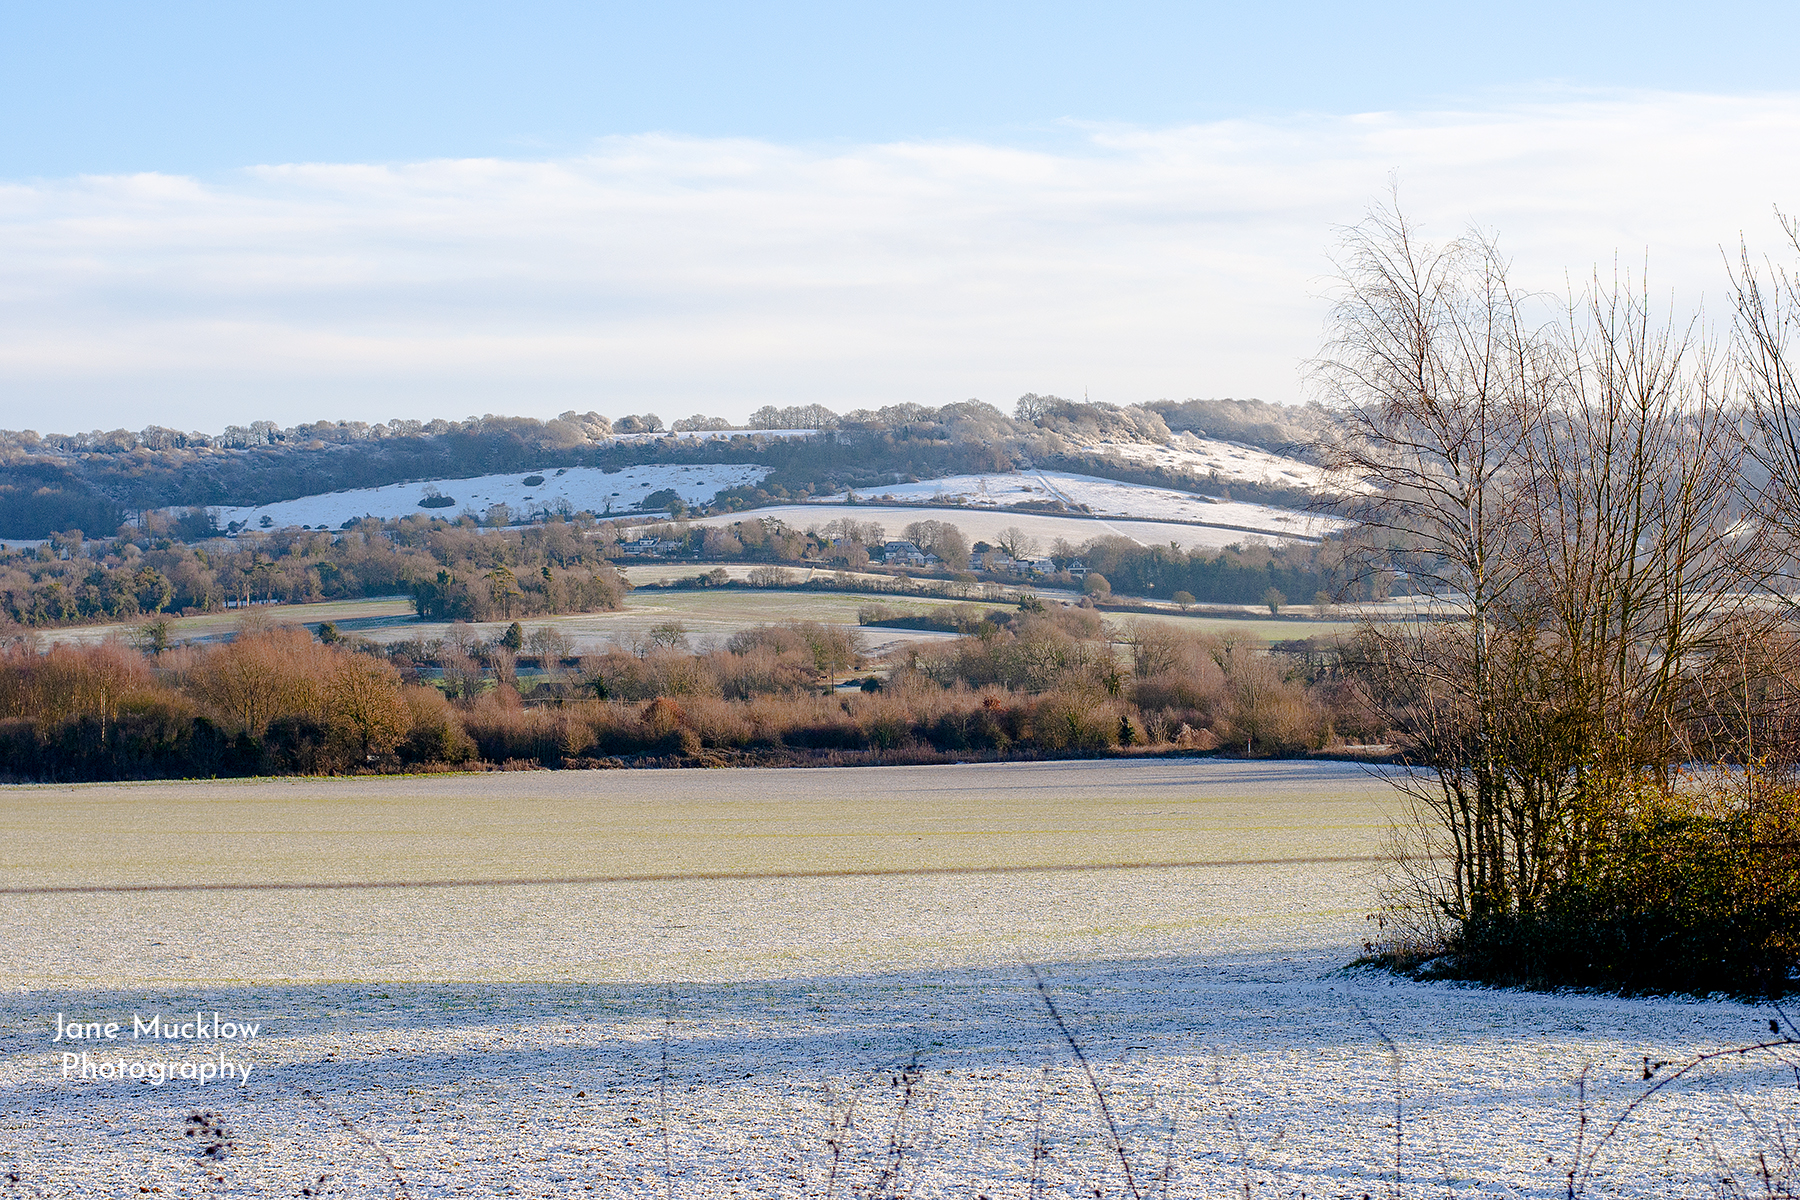 Photo by Jane Mucklow of frosty and snowy view across Otford to Otford Mount